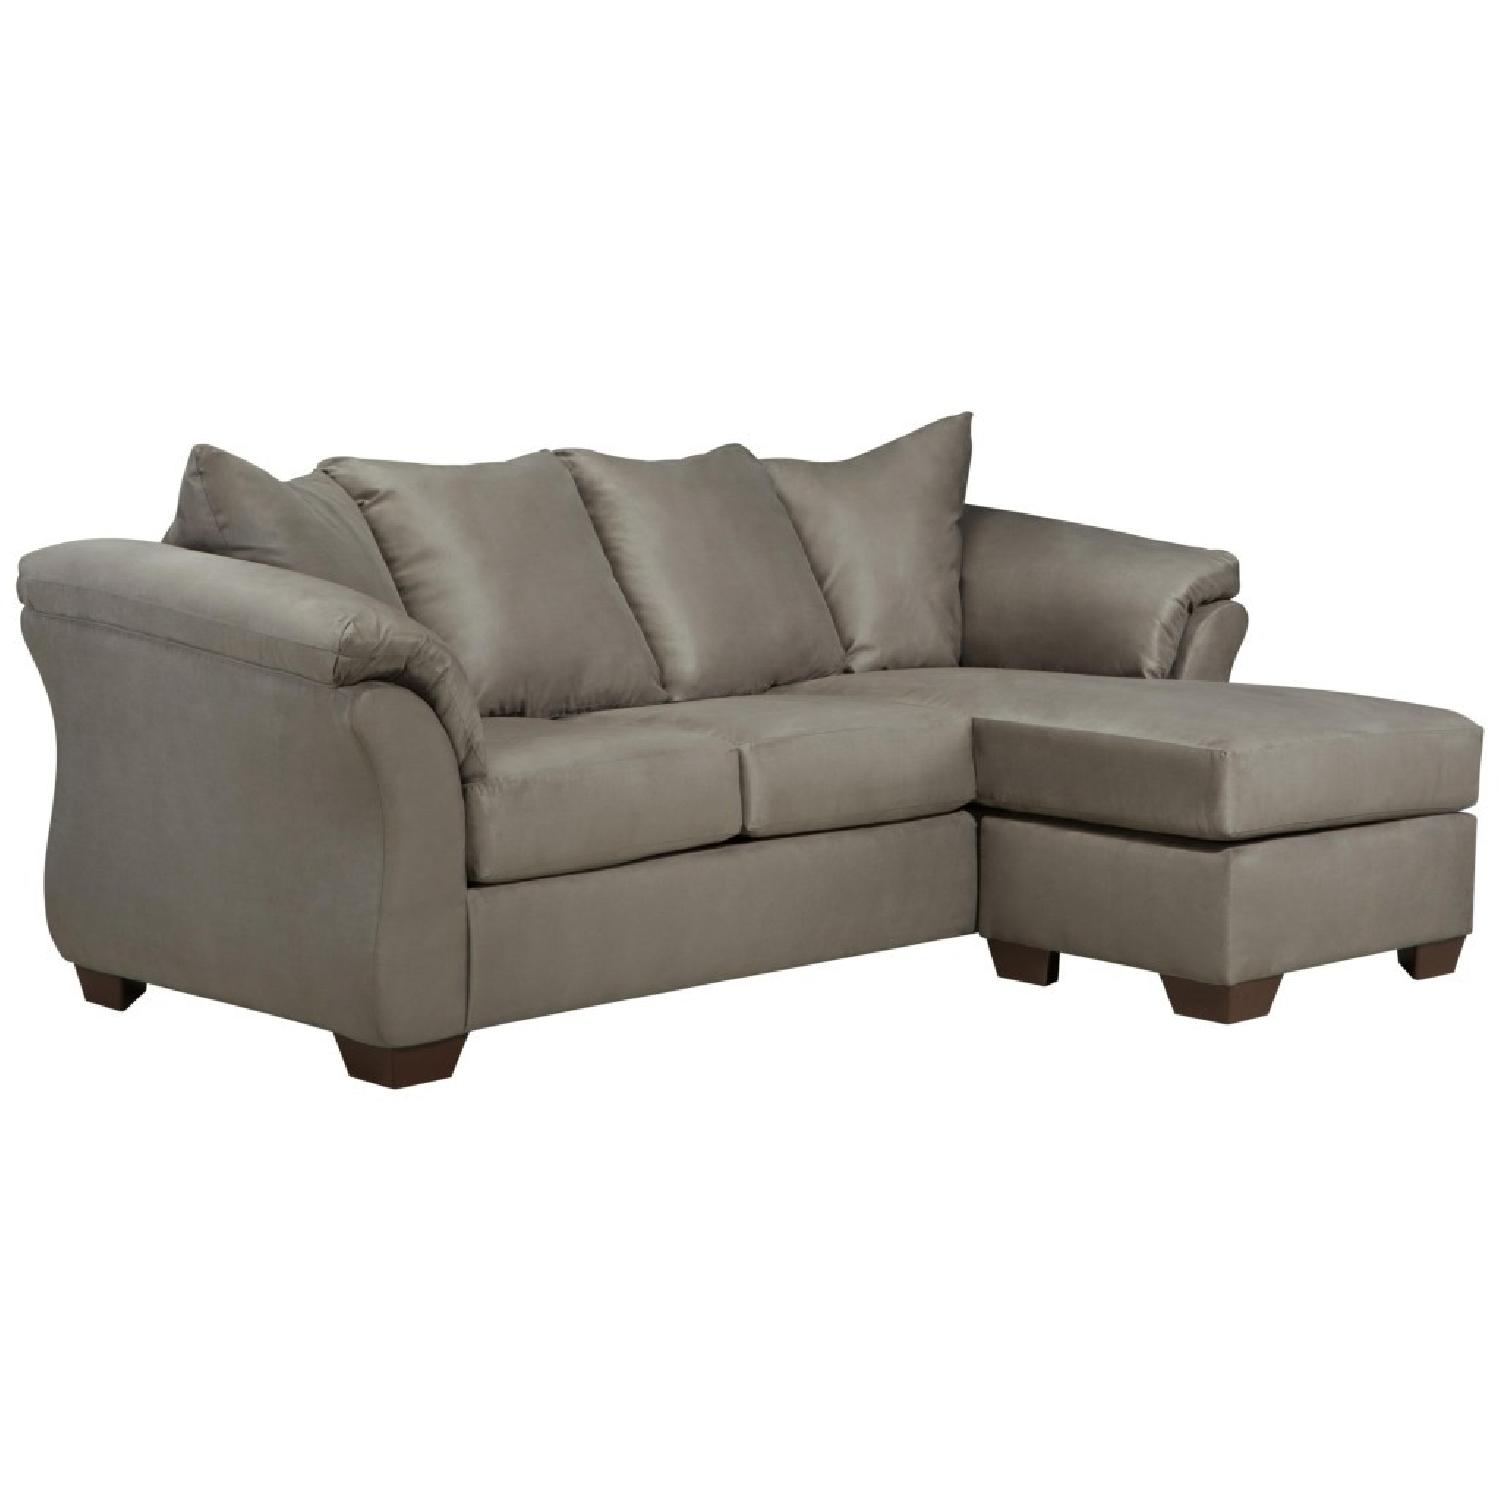 mason chaise reversible sofas home sofa steeple taylor grey jennifer sectional